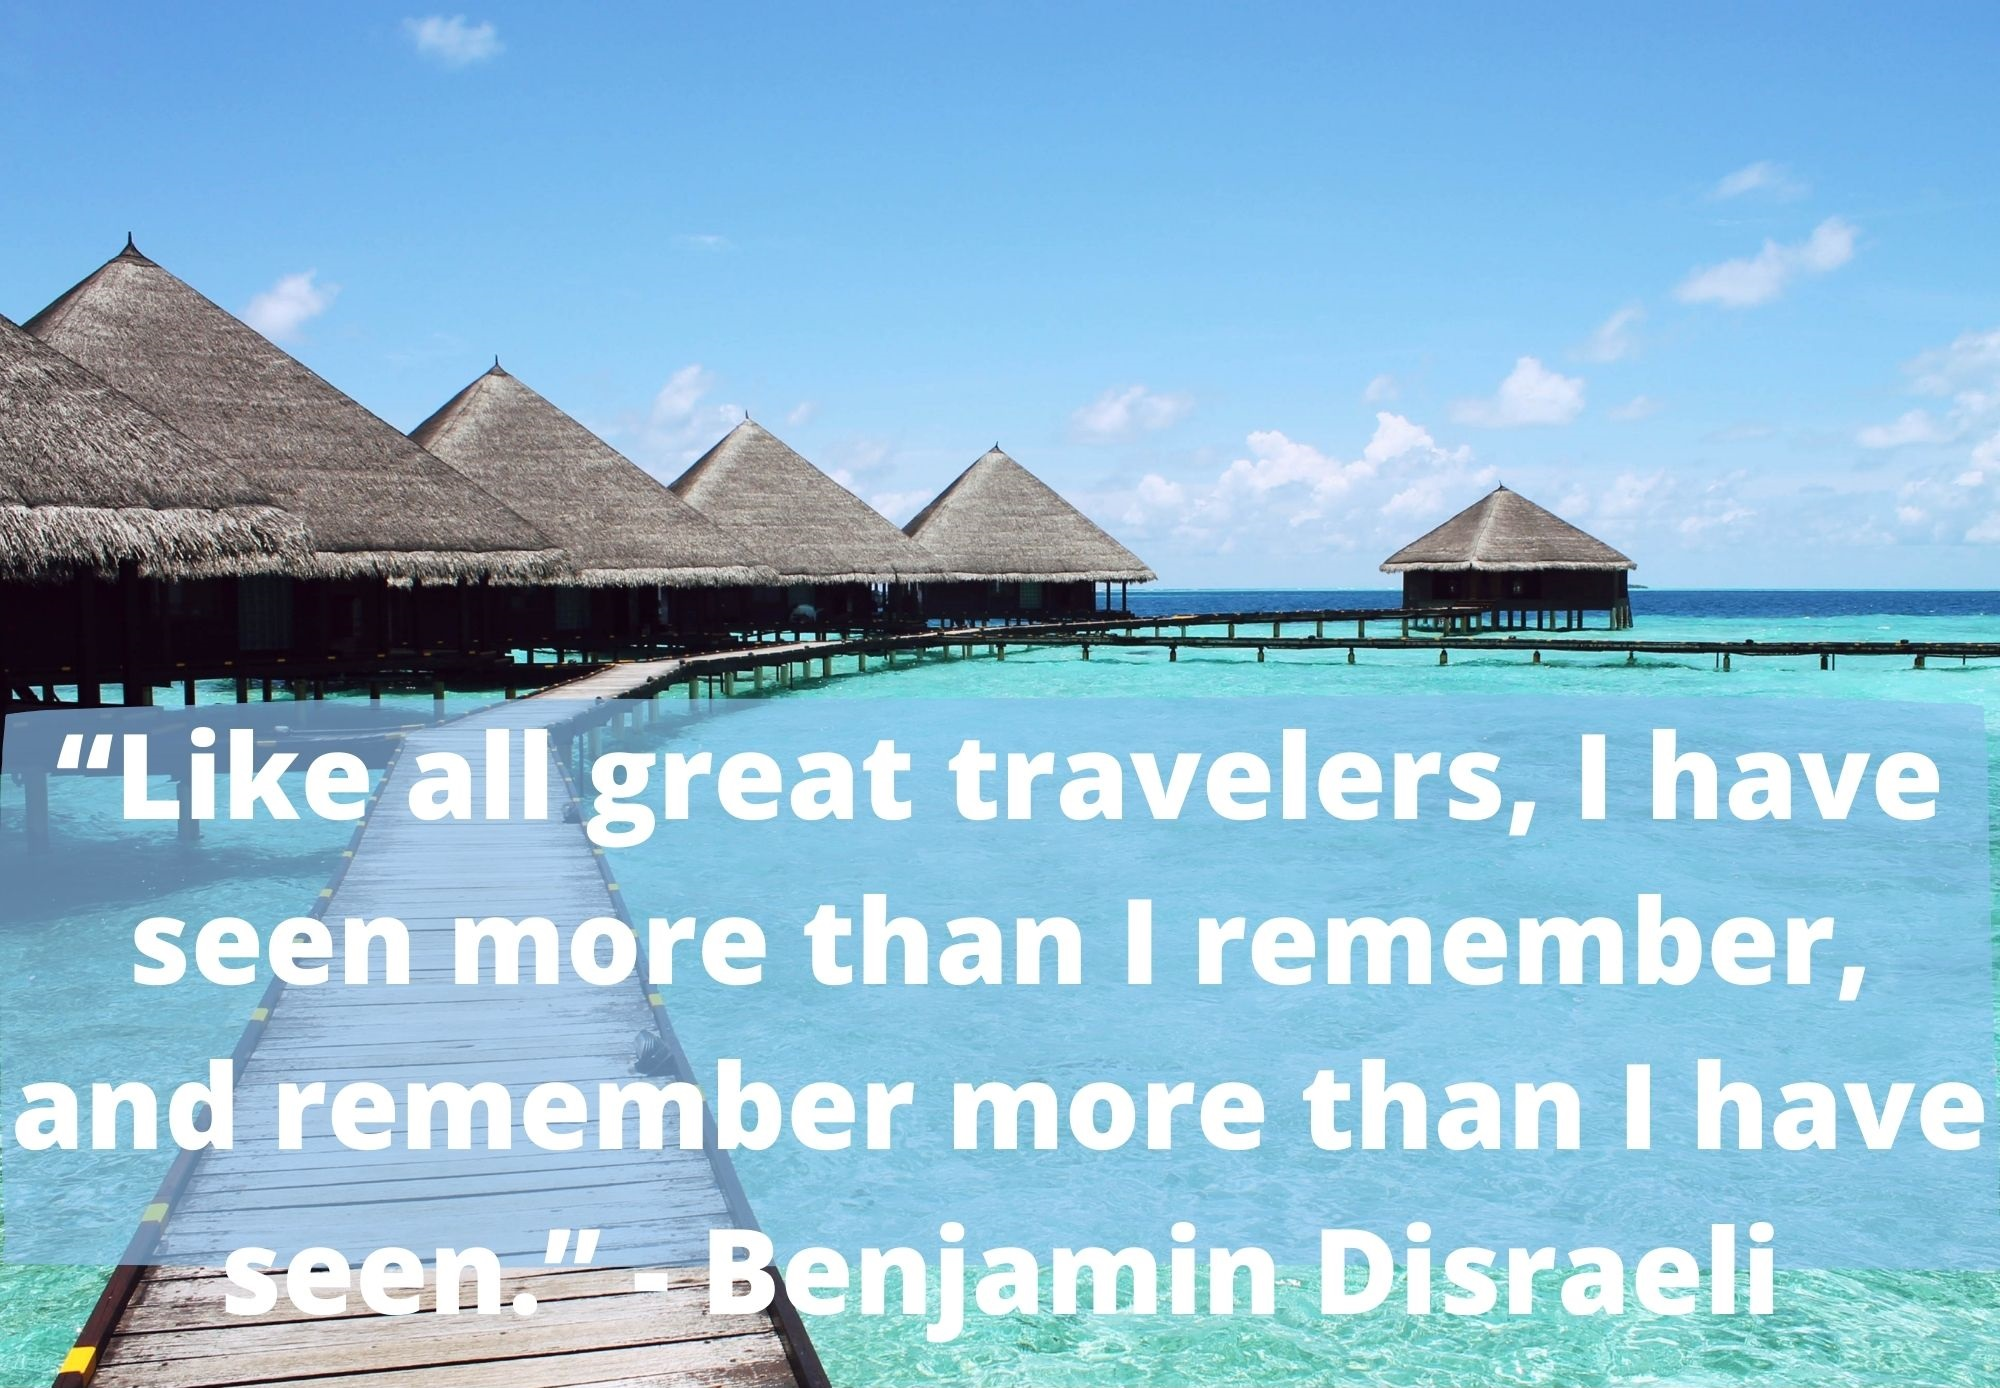 """Like all great travelers, I have seen more than I remember, and remember more than I have seen."" -Benjamin Disraeli"